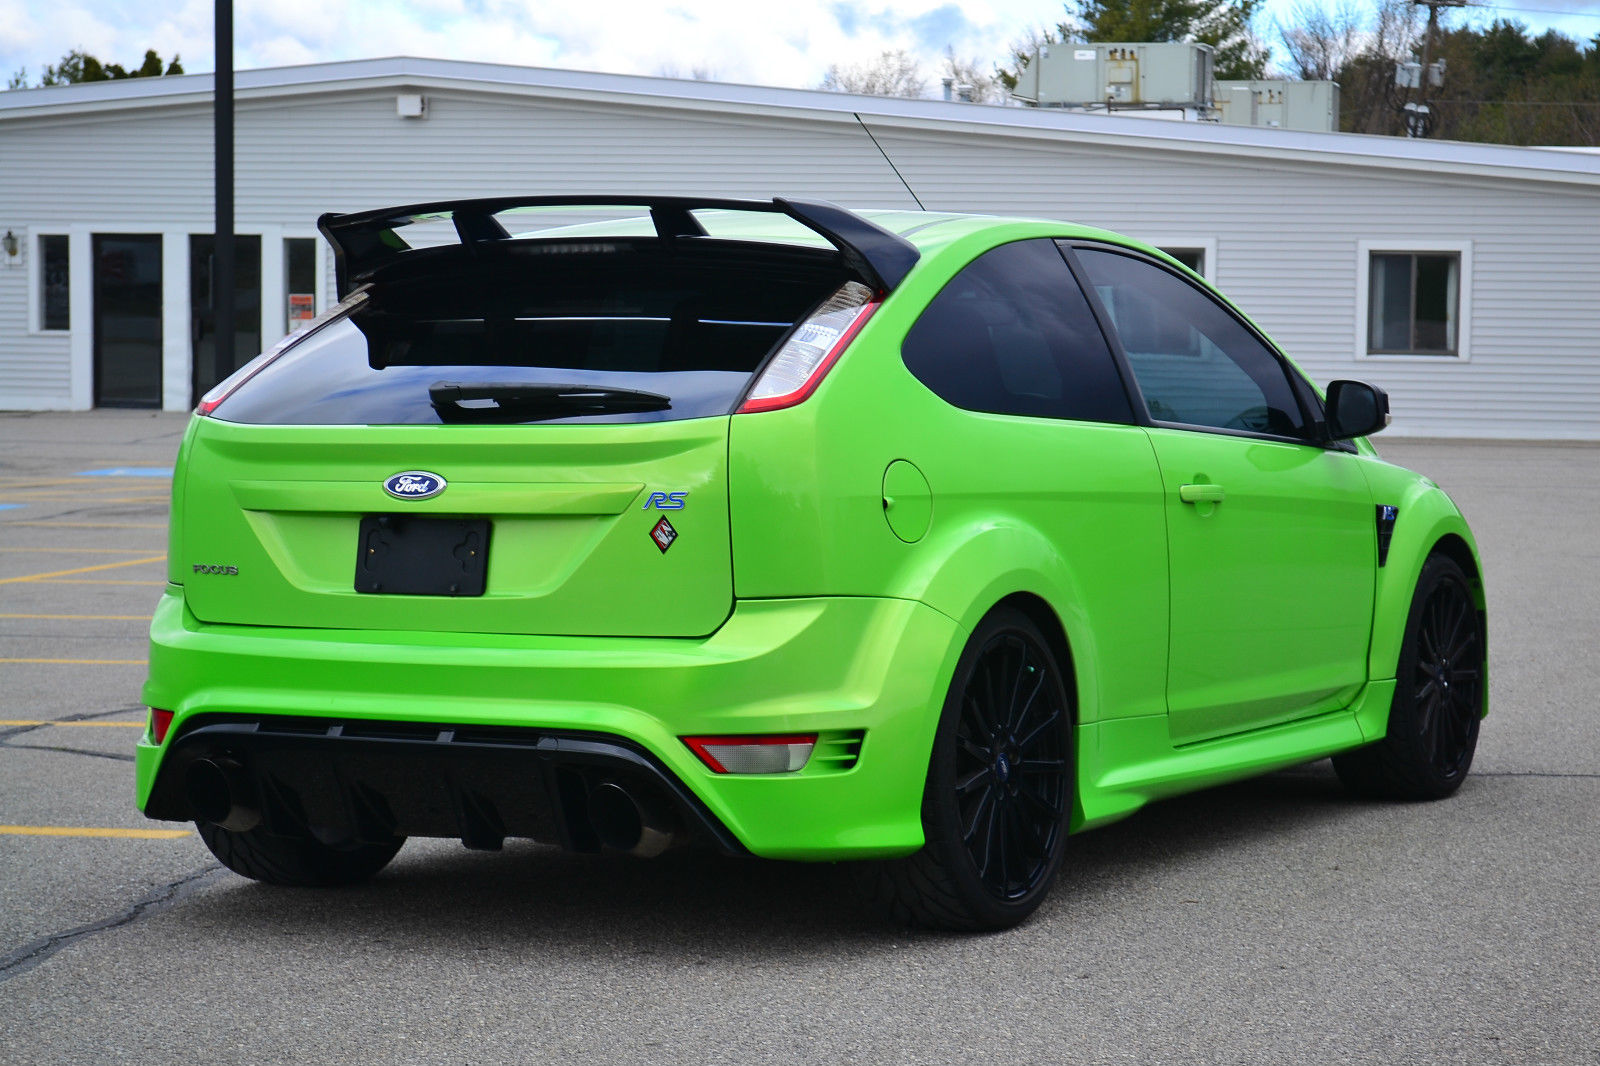 2010 ford focus rs ebay photo 13 the news wheel. Black Bedroom Furniture Sets. Home Design Ideas